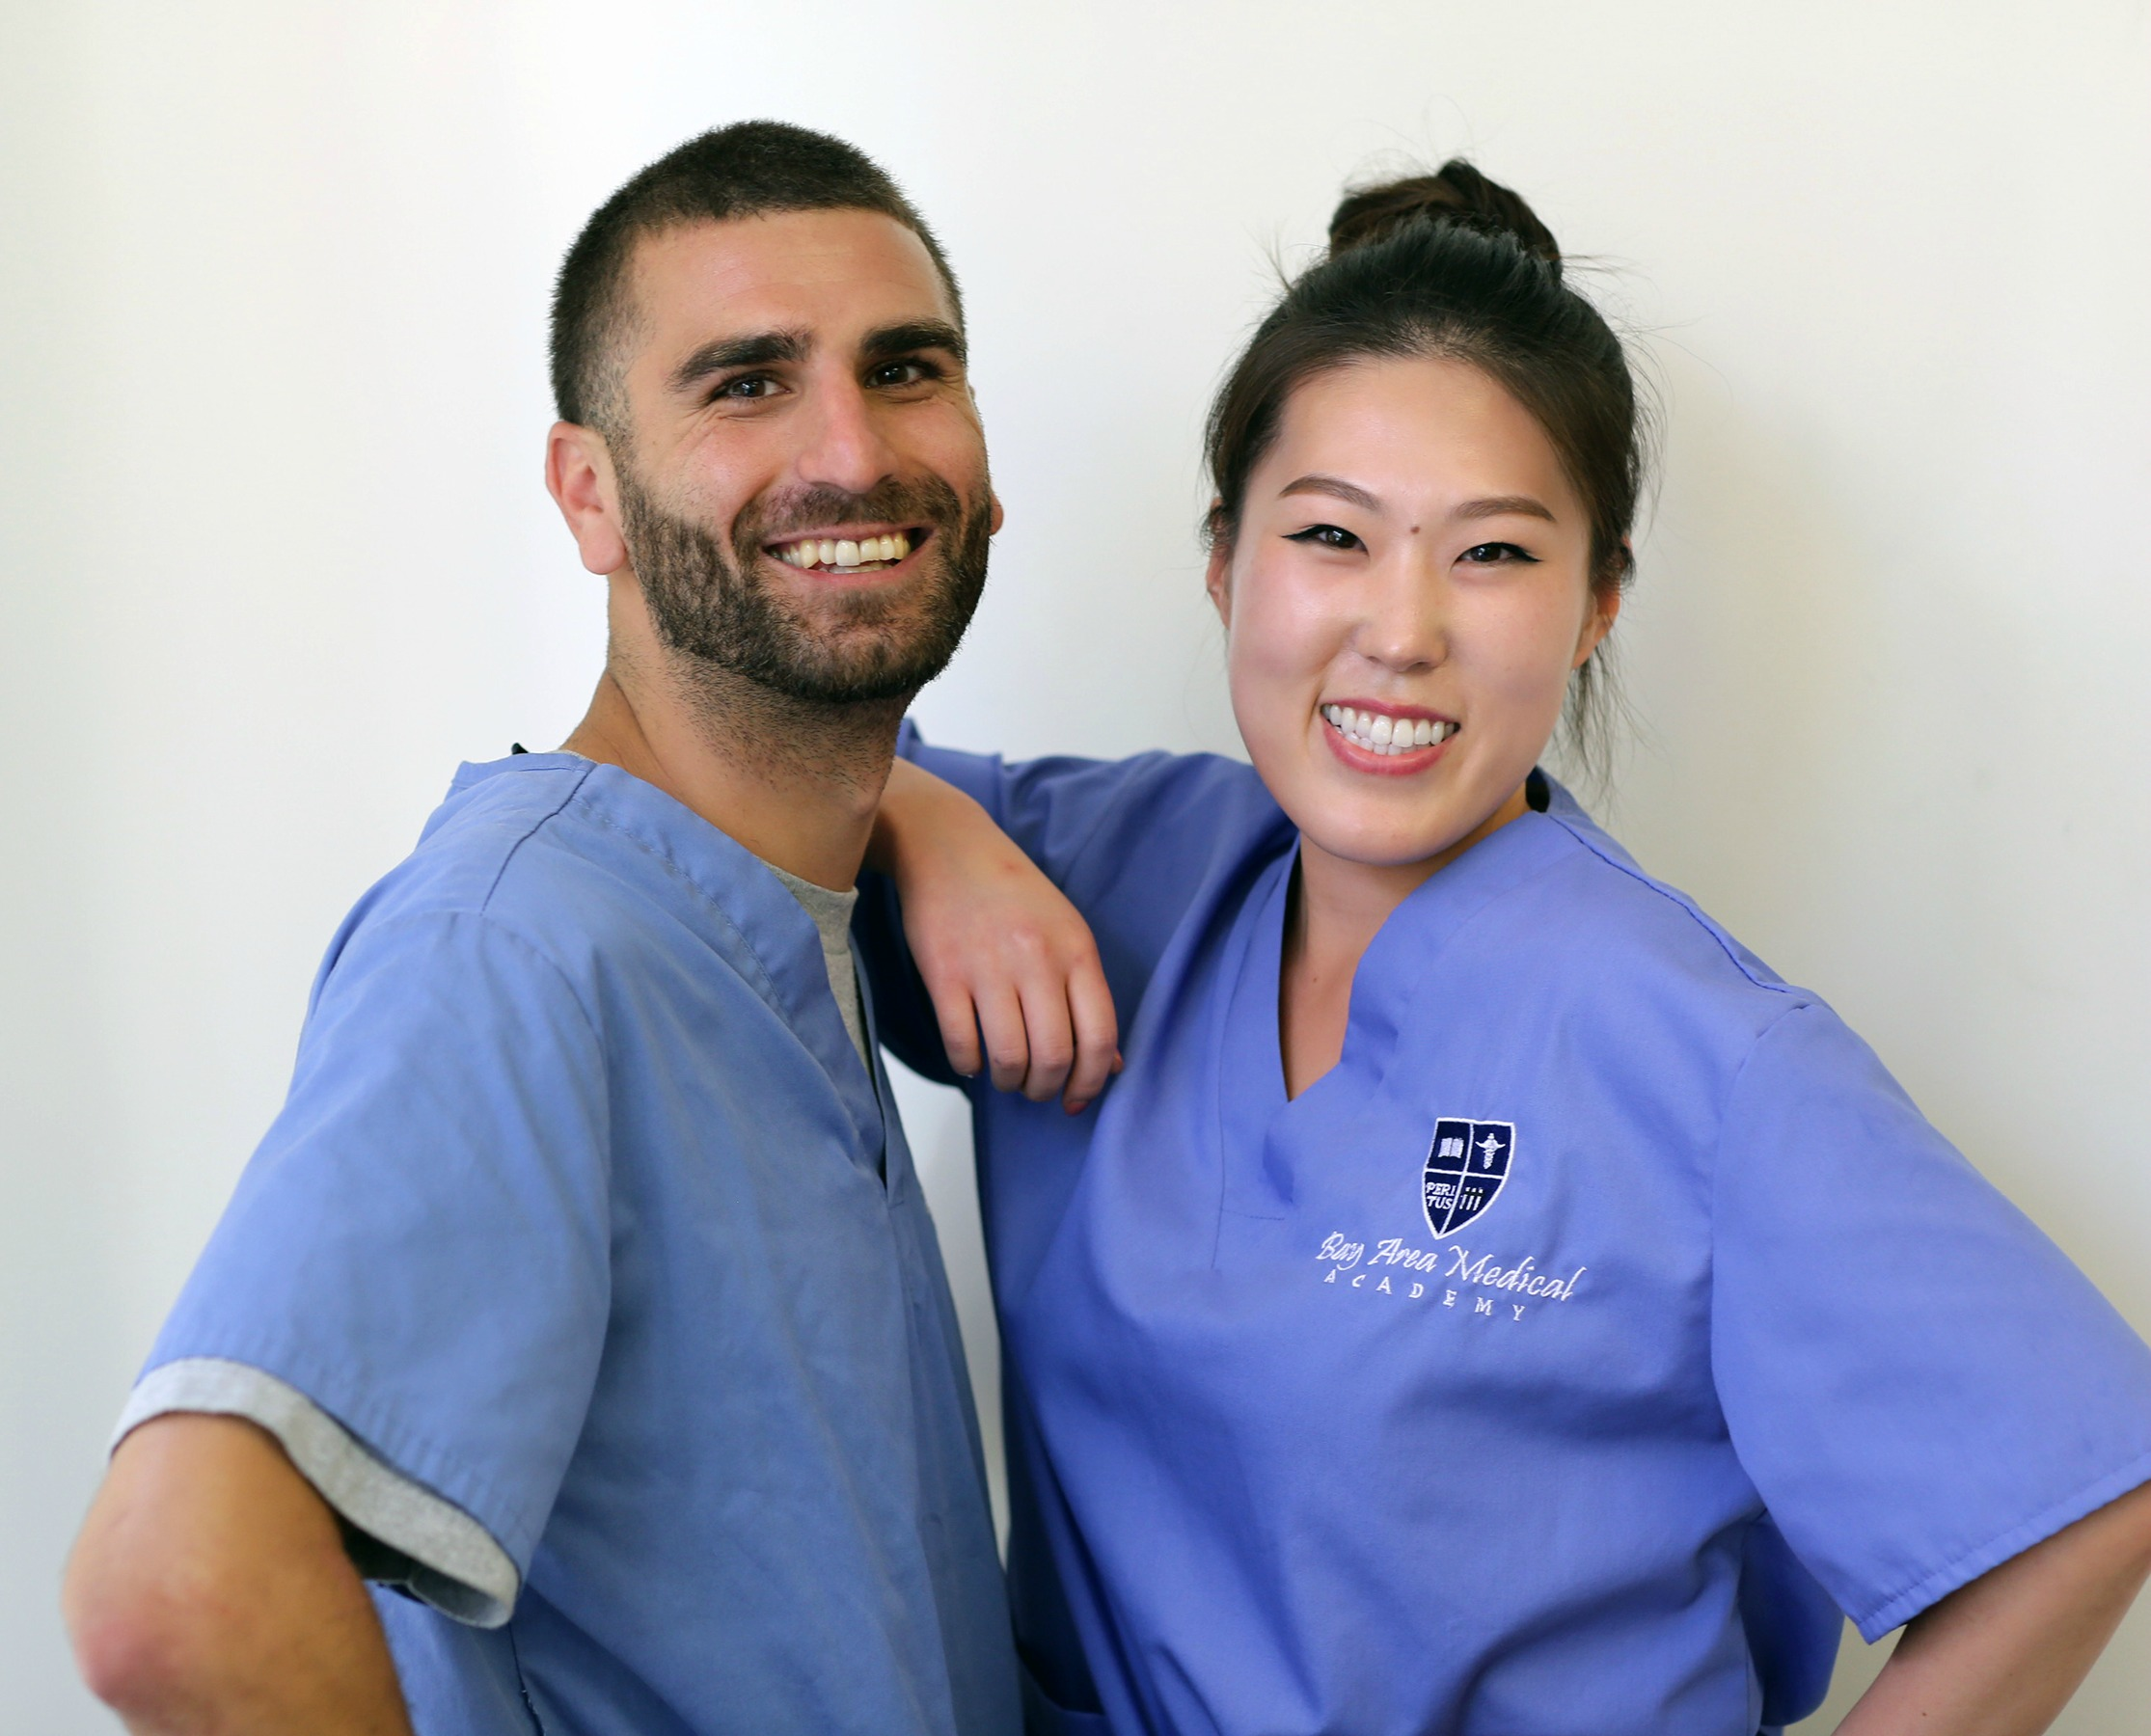 Two smiling B A M A medical assistant students